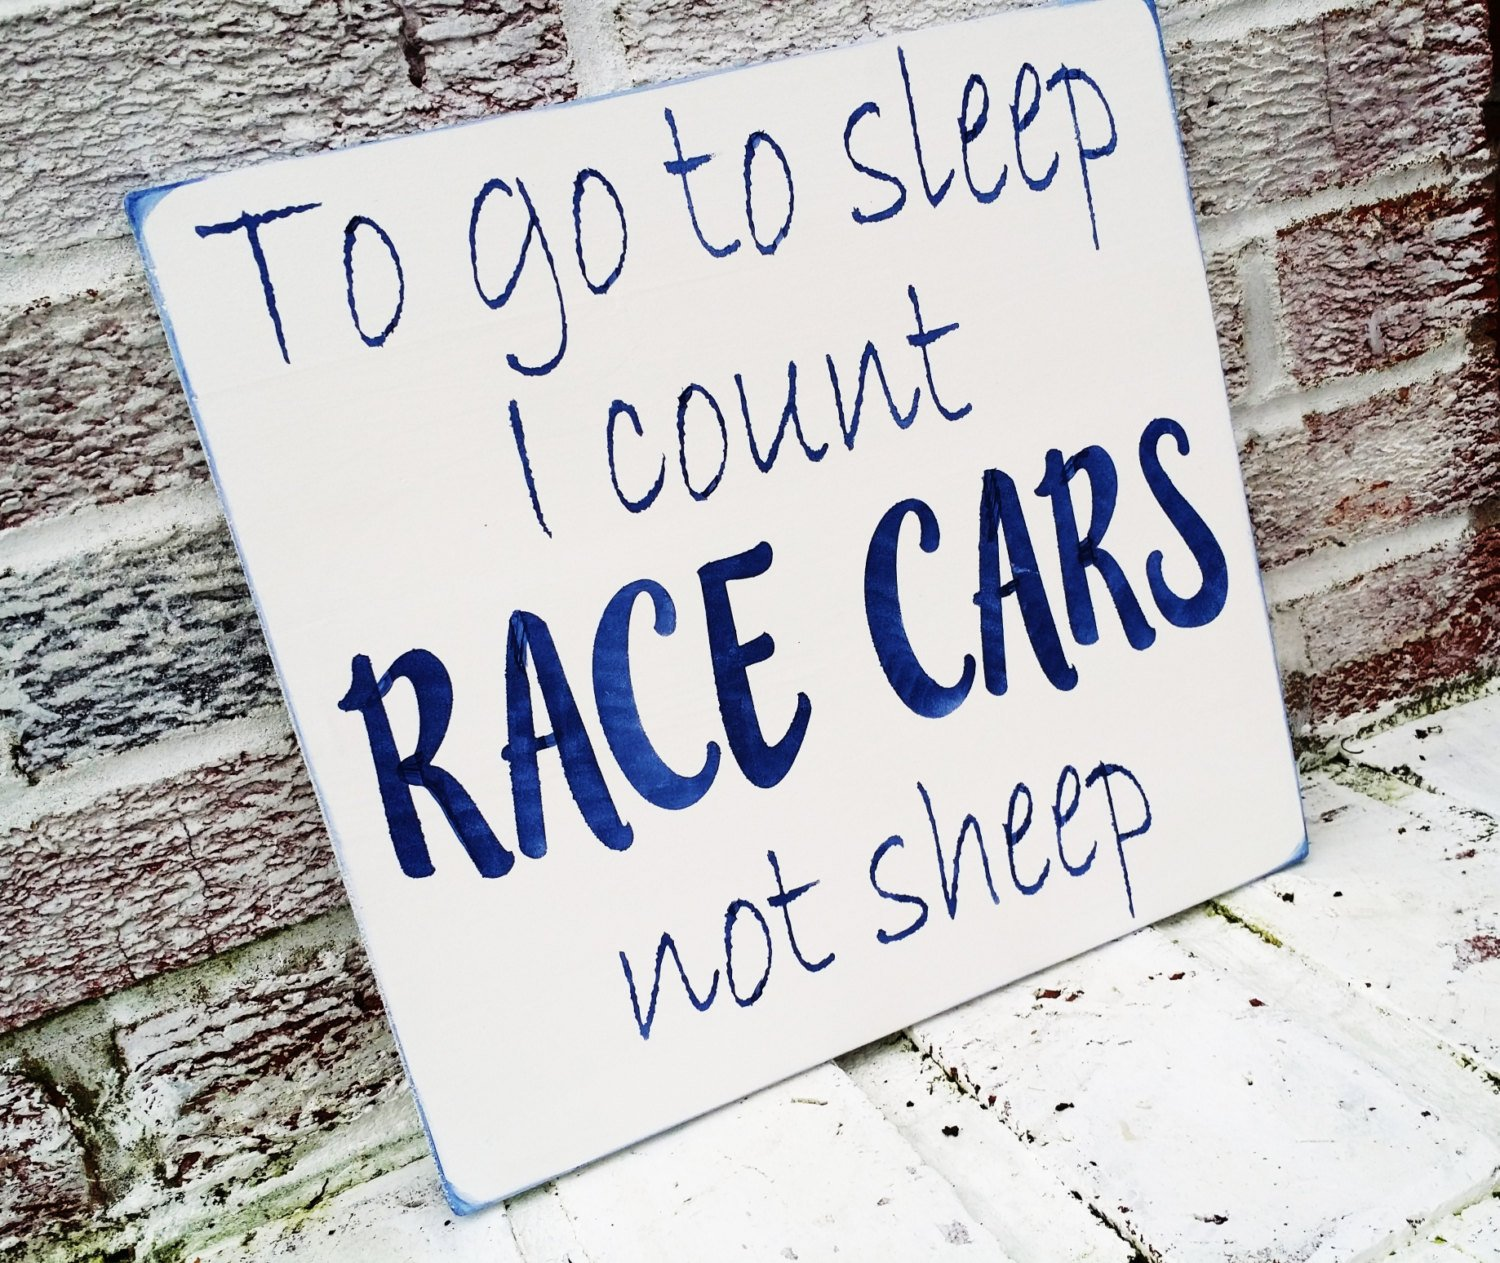 Amazon Nascar Race Car Nursery Theme Baby Boy Cars To Go Sleep I Count Not Sheep Shower Gift